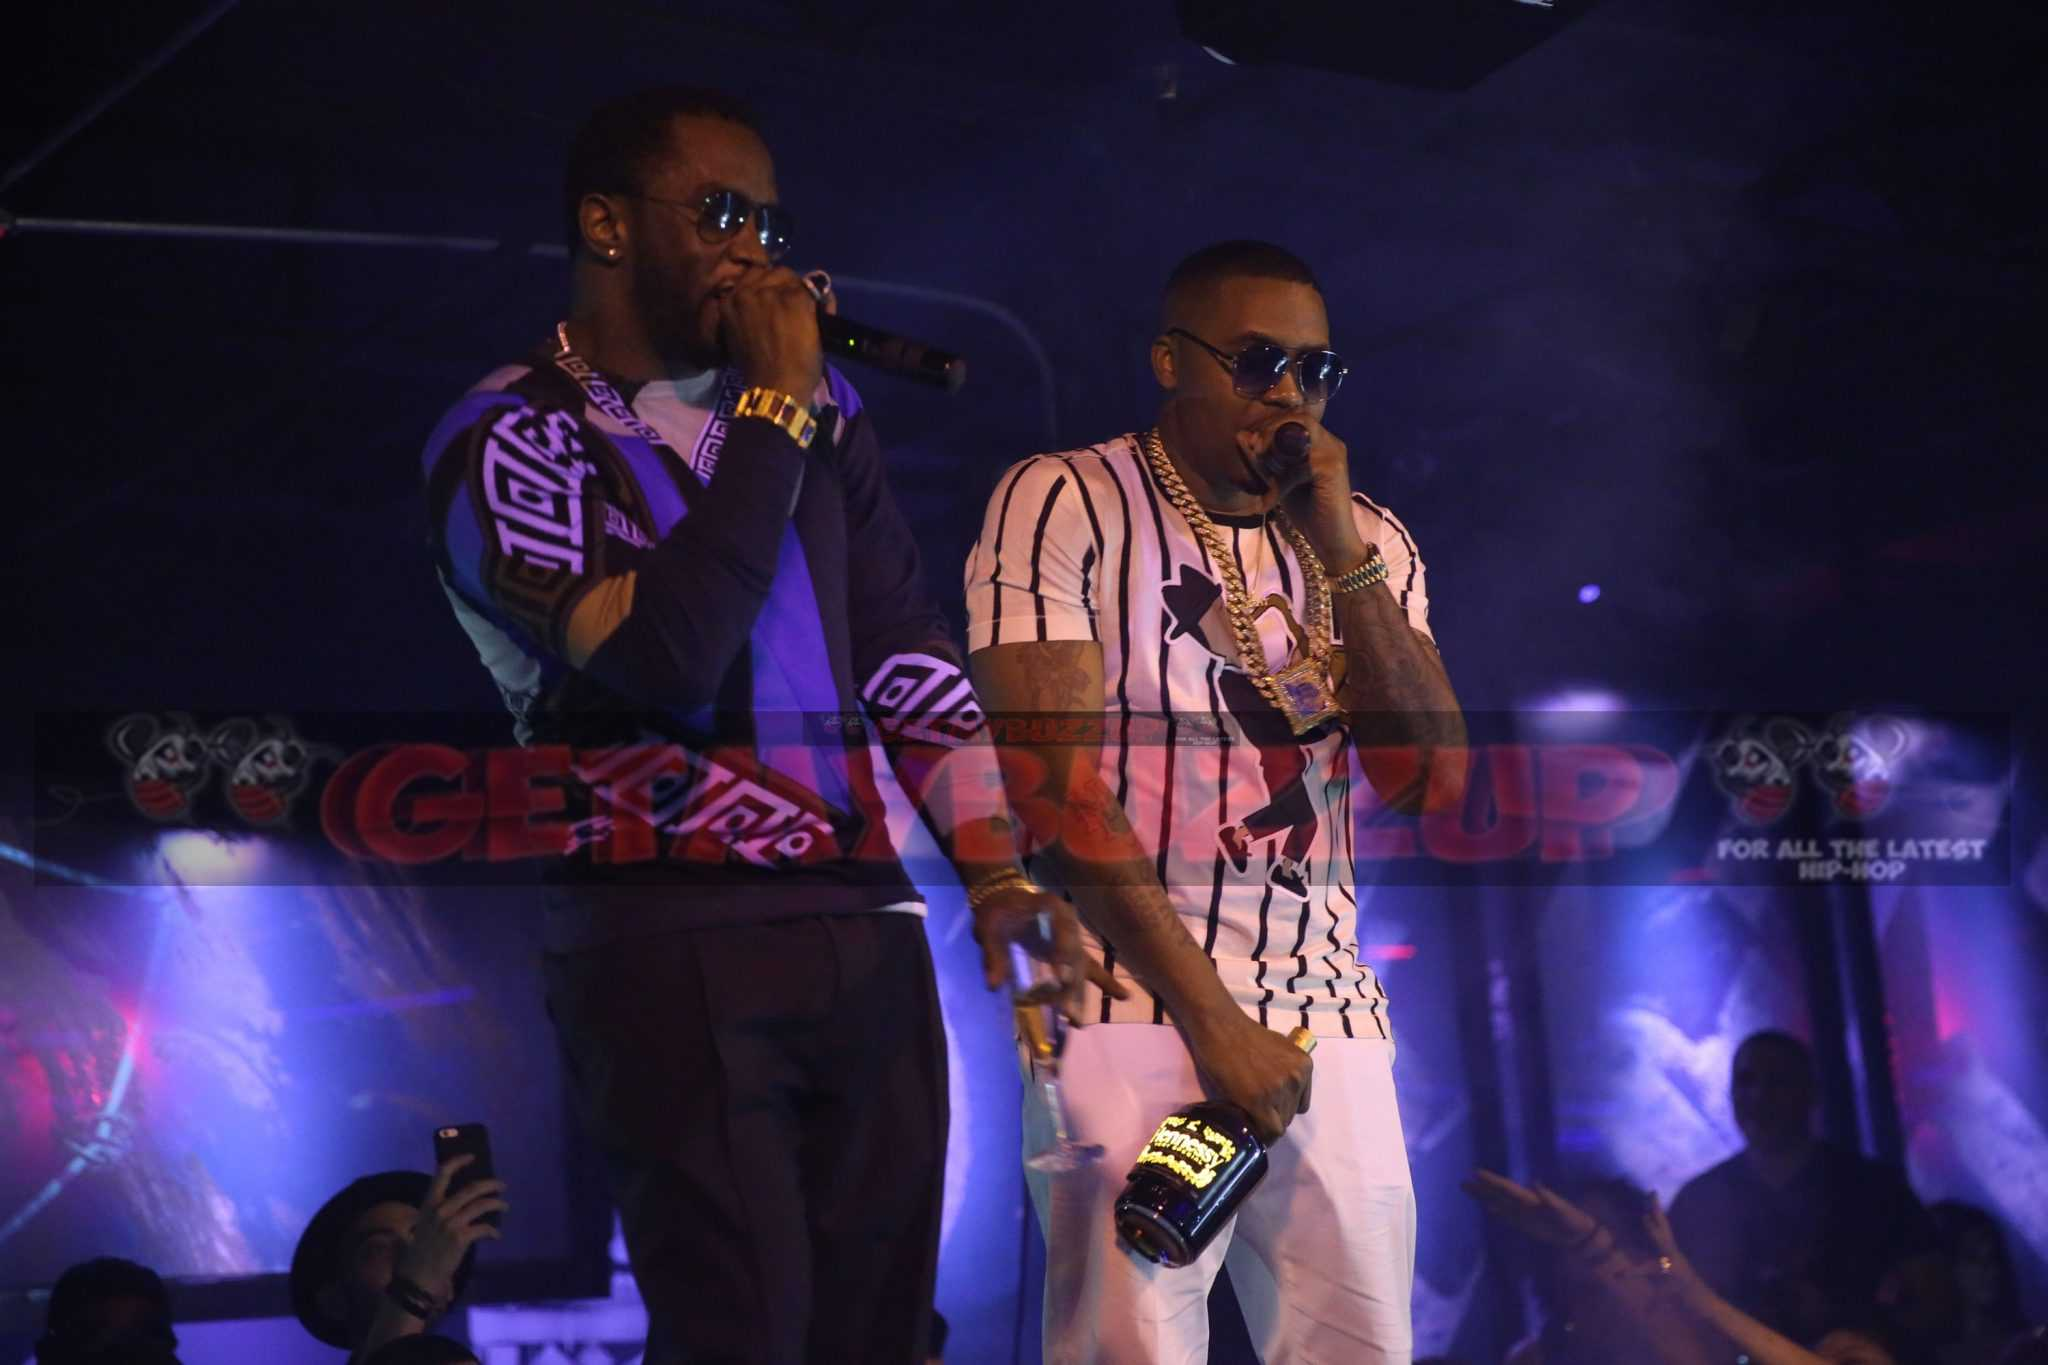 Celebrity Sighting: Diddy Surprises Crowd and Performs with Nas at 1 Oak in Miami Art Basel #ArtbaselMiami